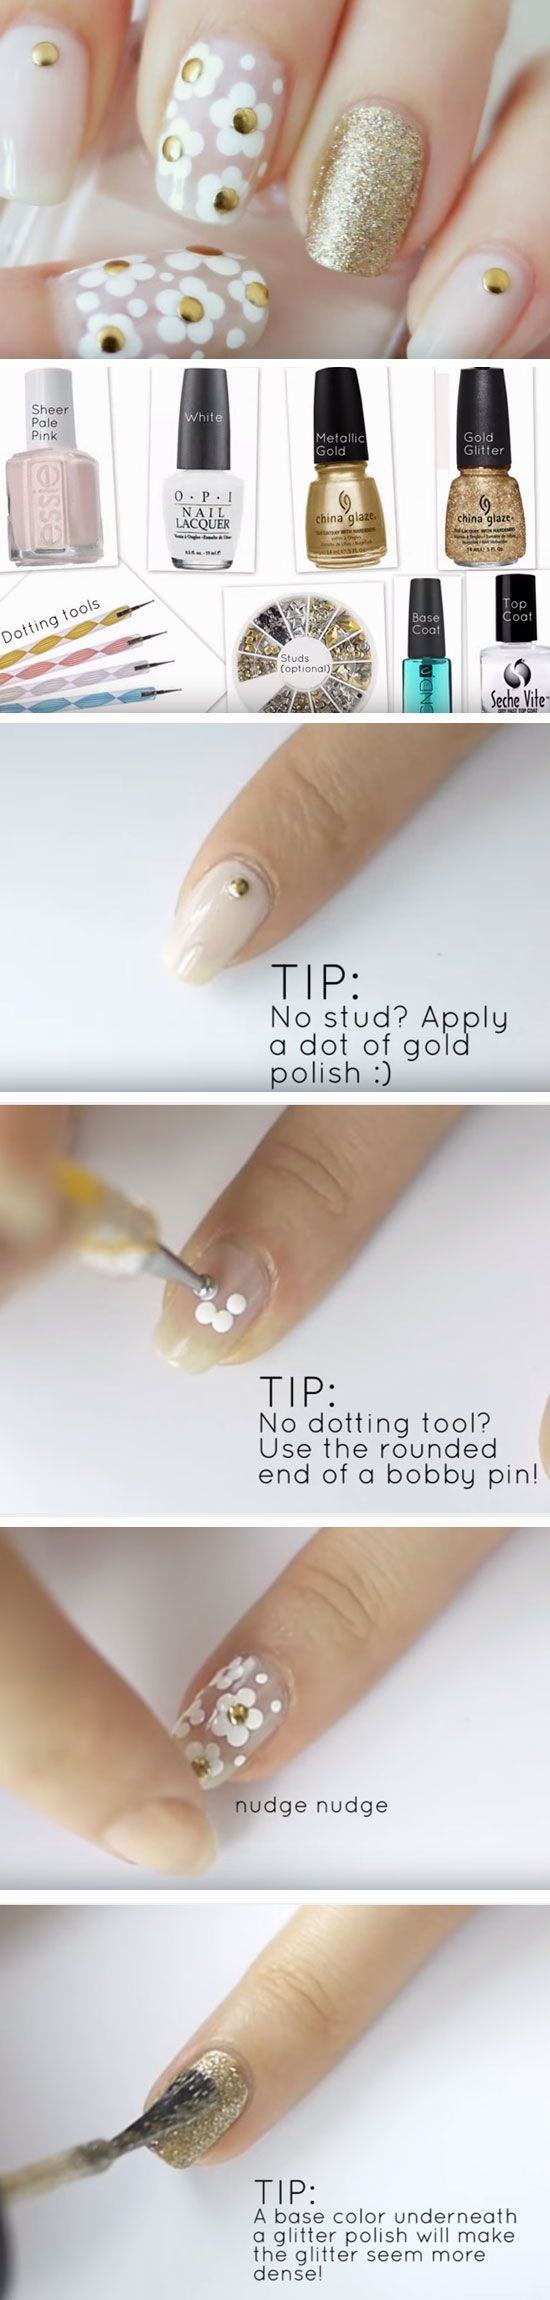 22 easy spring nail designs for short nails nail design nails 22 easy spring nail designs for short nails prinsesfo Image collections